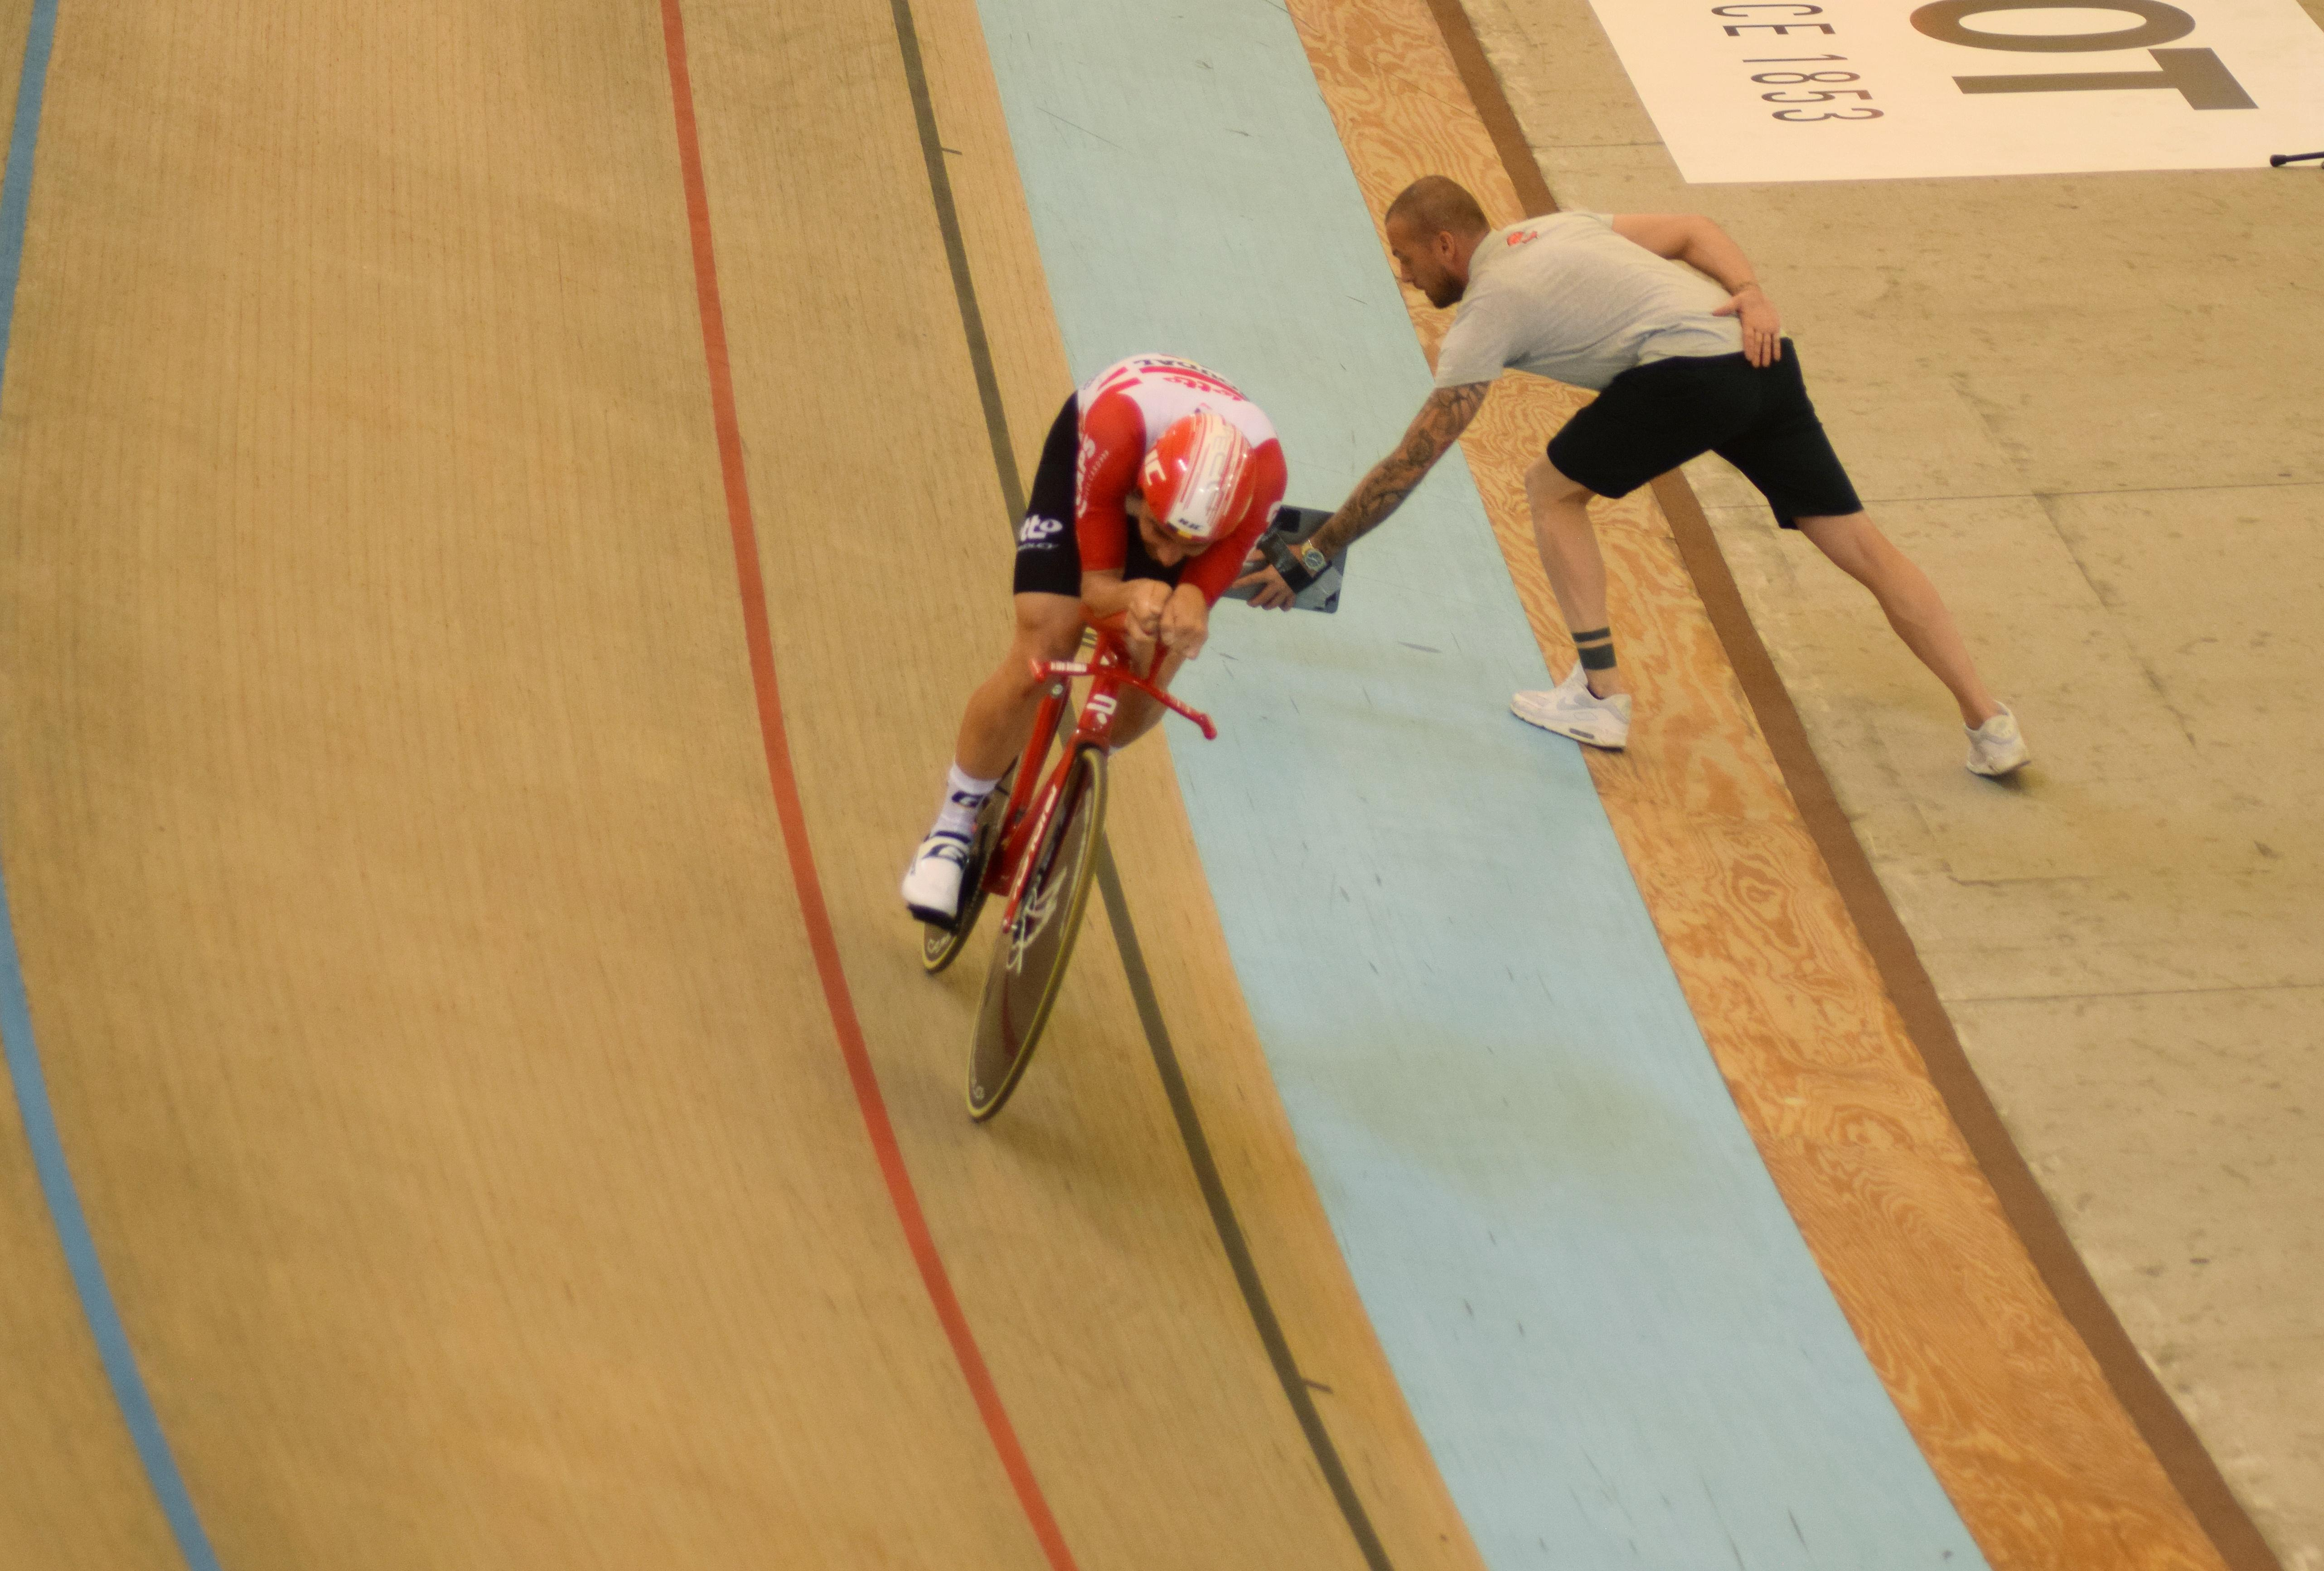 Cycling: Campenaerts breaks Wiggins' one-hour record in Mexico